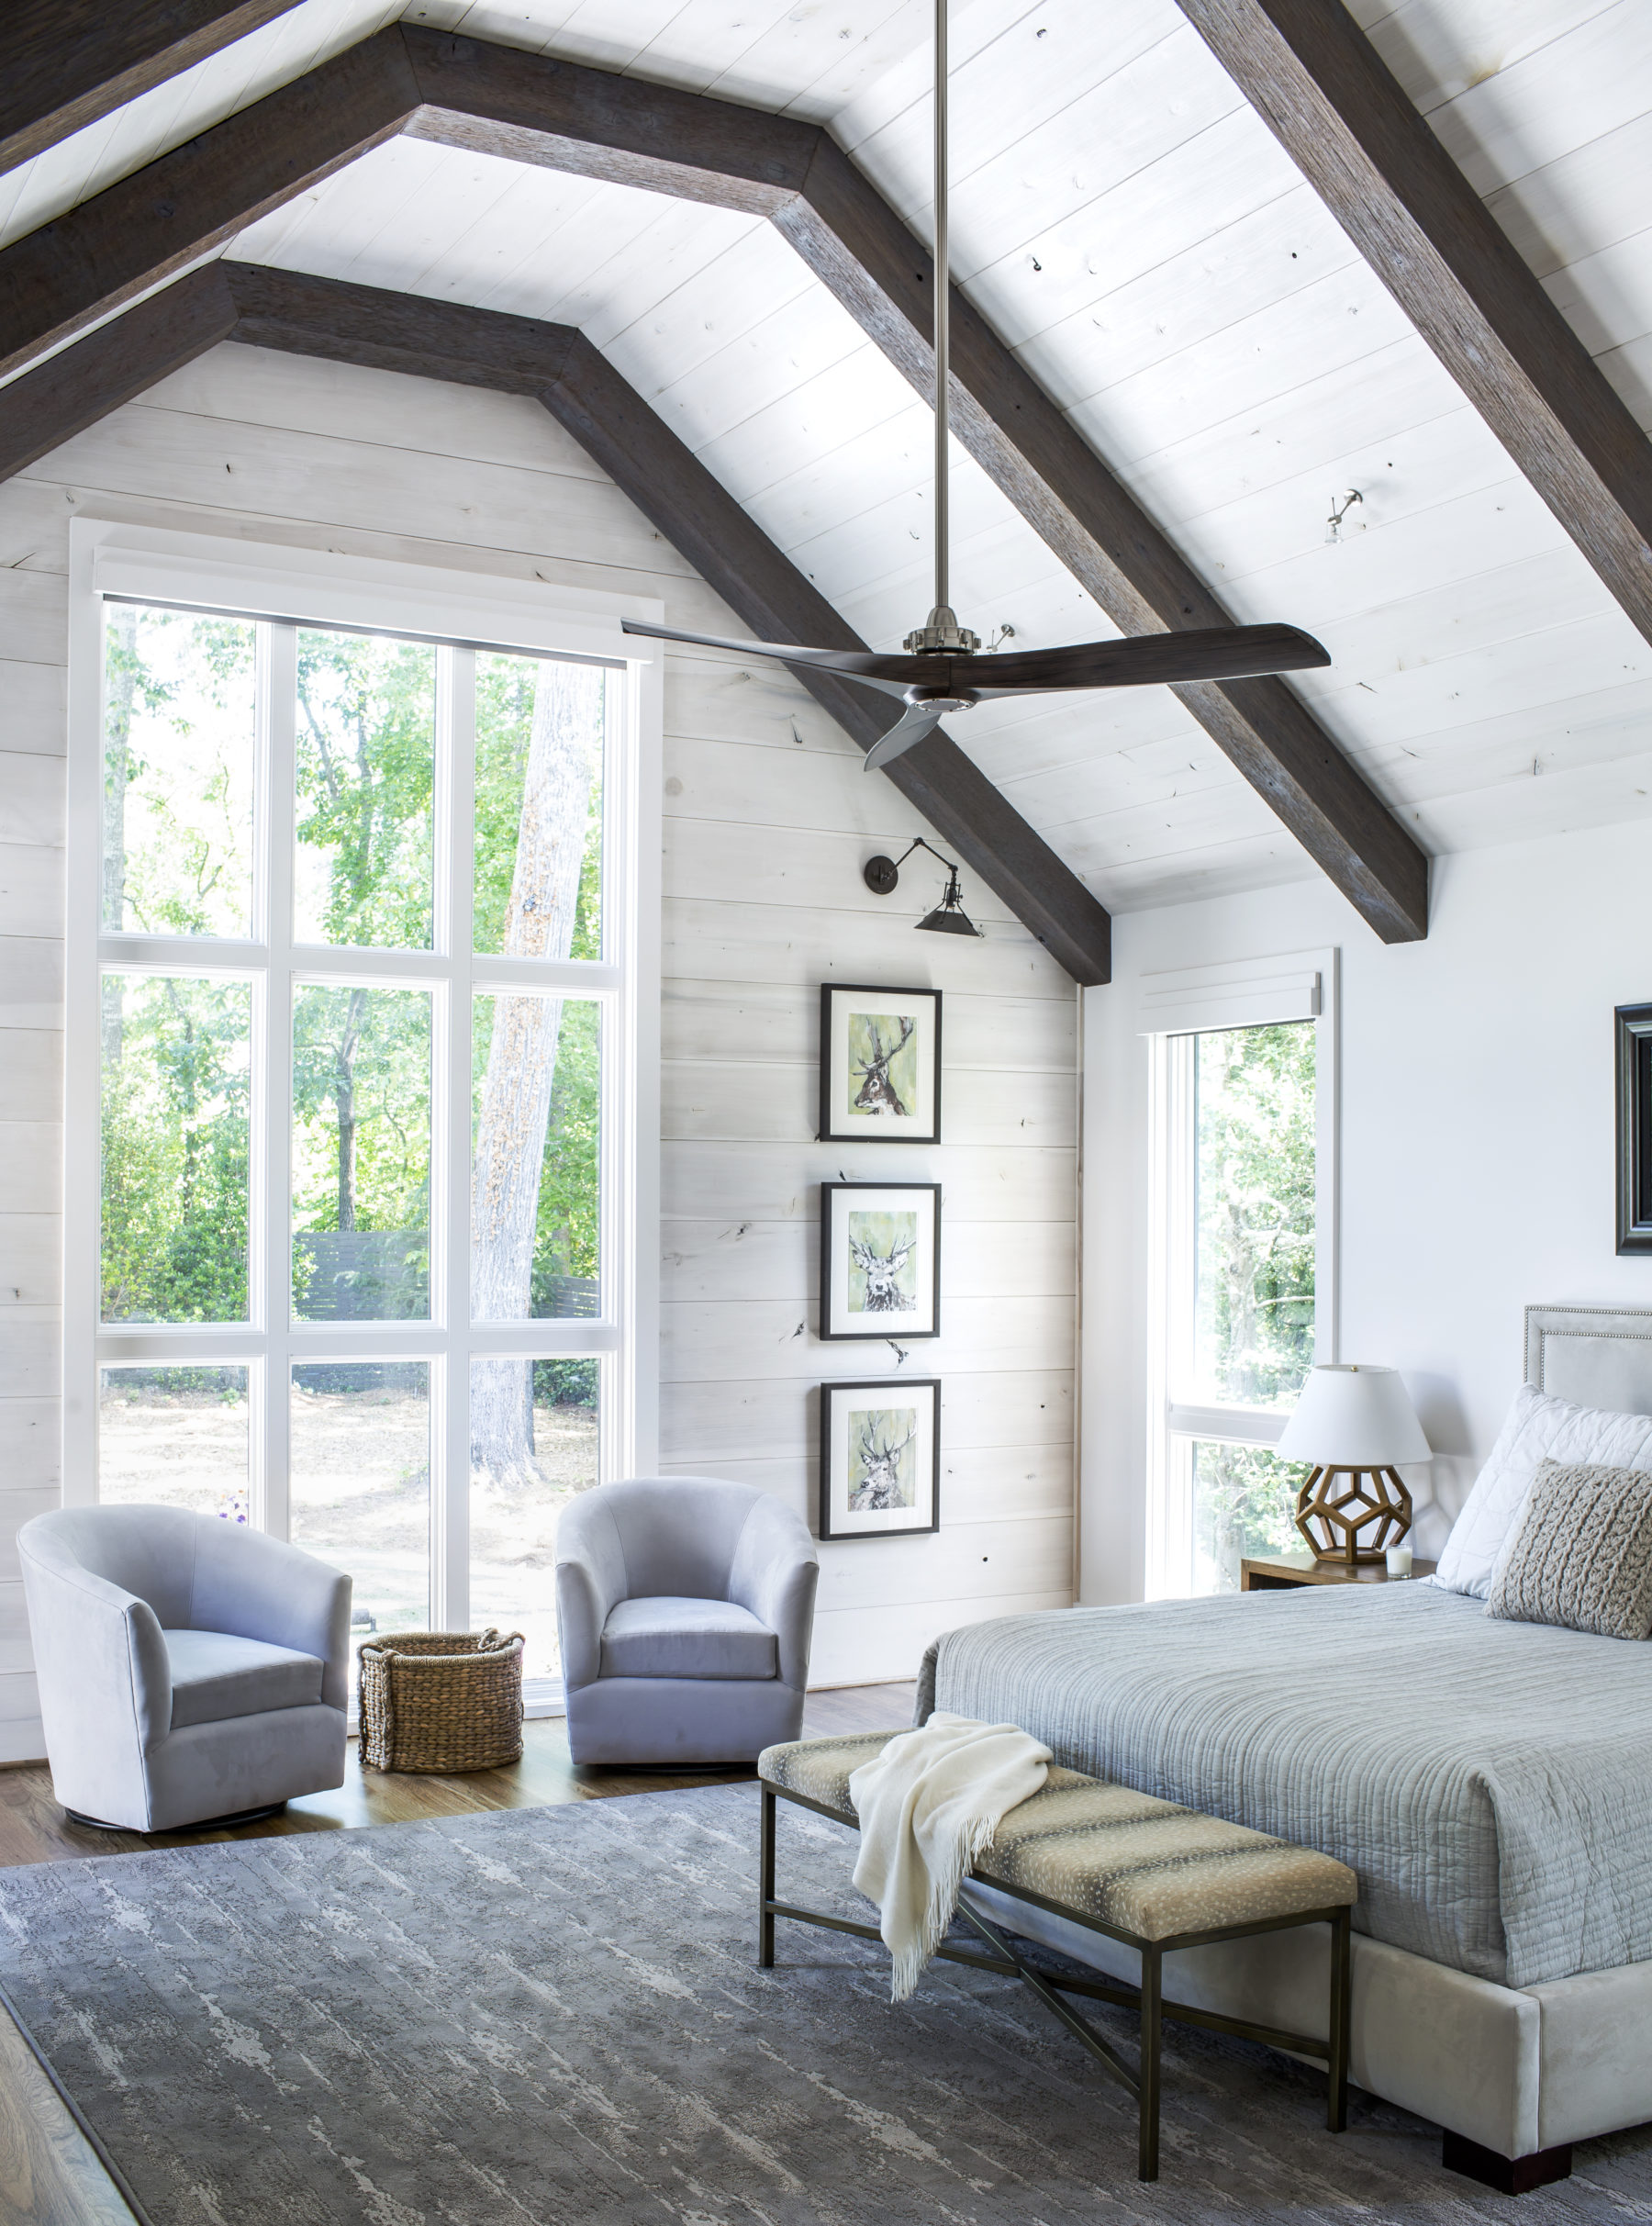 Dark beams, whitewashed shiplap wall and ceiling in bedroom by architects Harrison Design with streamlined ceiling fan